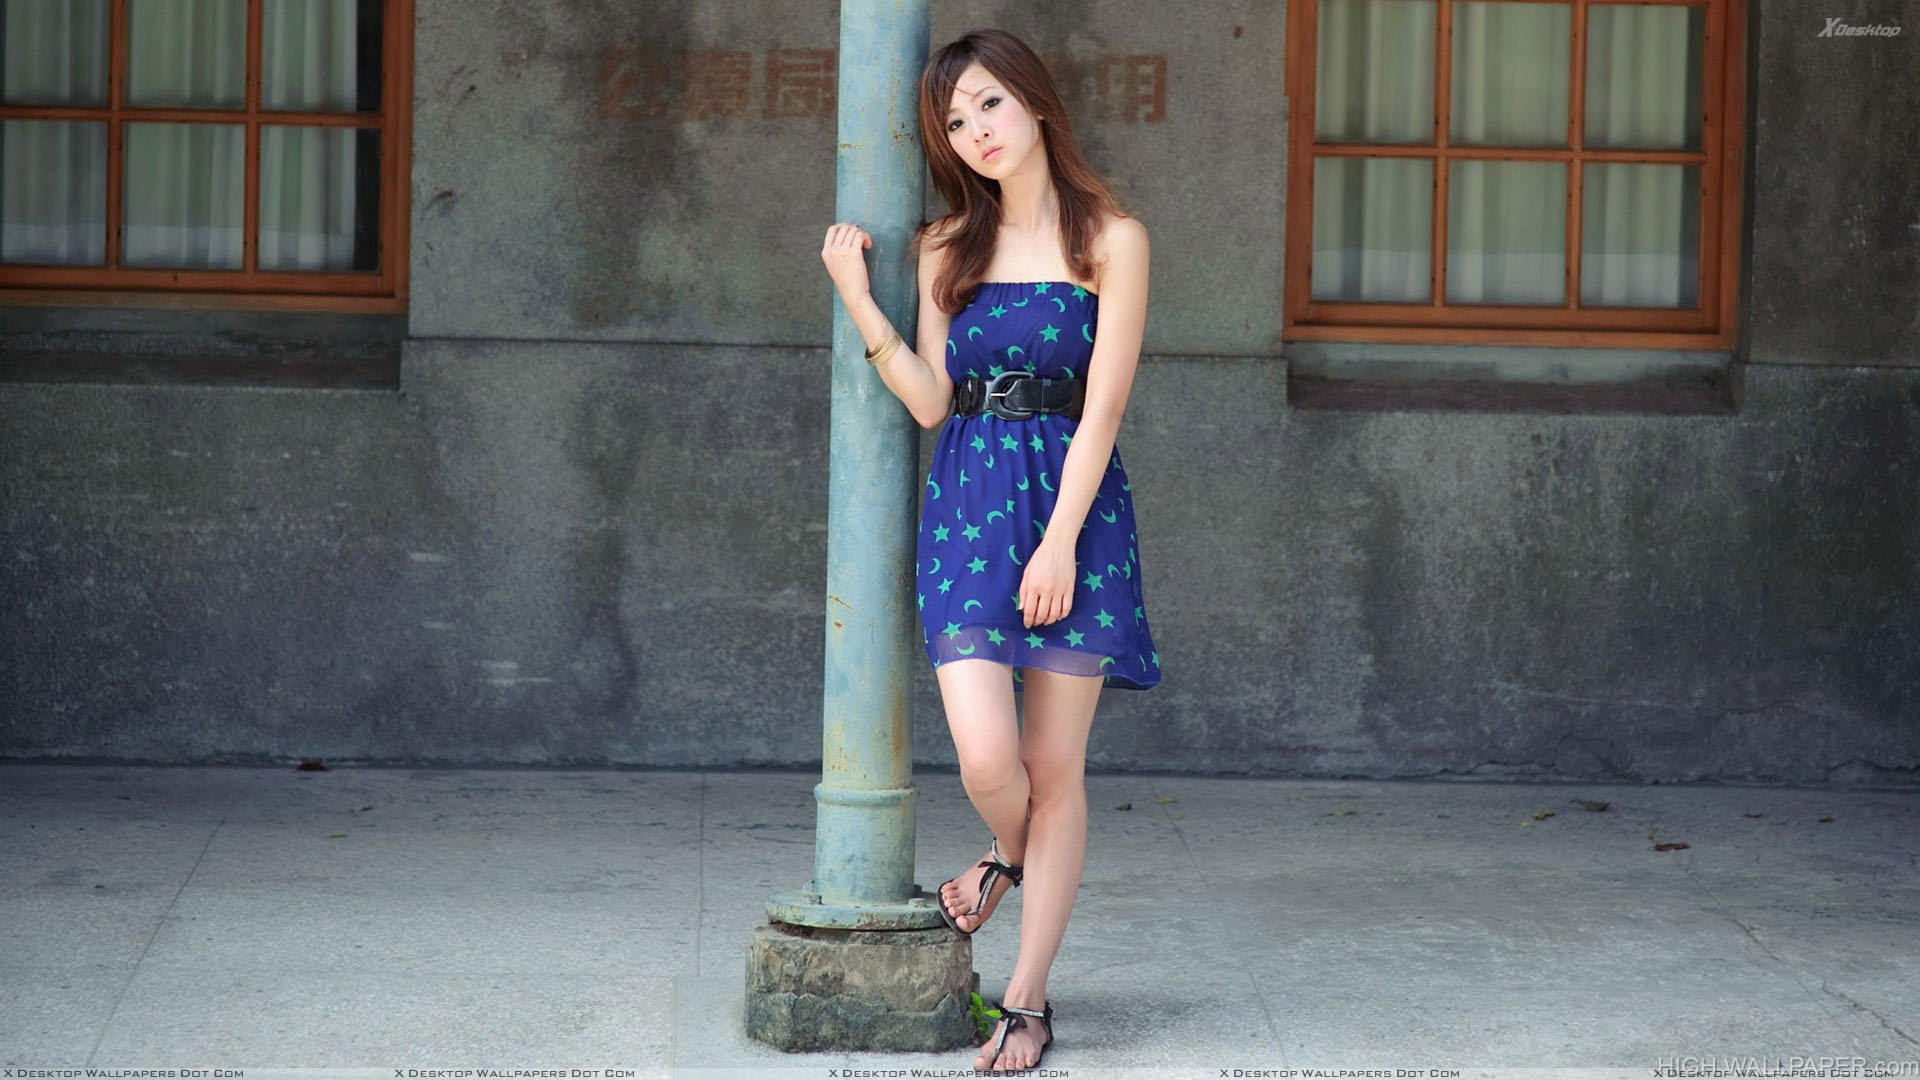 Lonely Girl Hd Wallpapers 1080p Sweet Asian Girl Lonely Pose With Piller In Blue Dress Hd